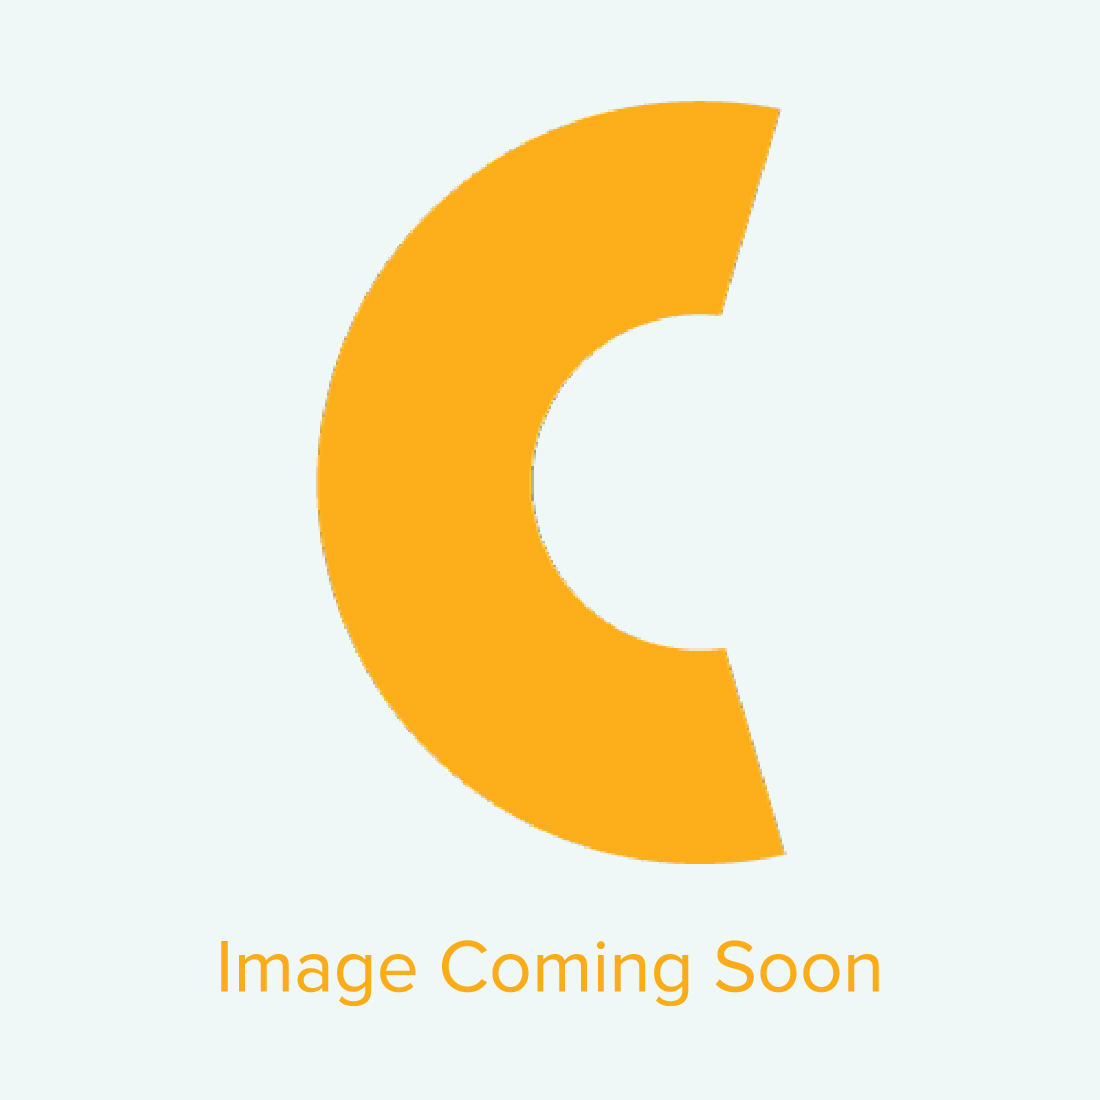 12oz. Stainless Steel Sublimation Wine Tumbler